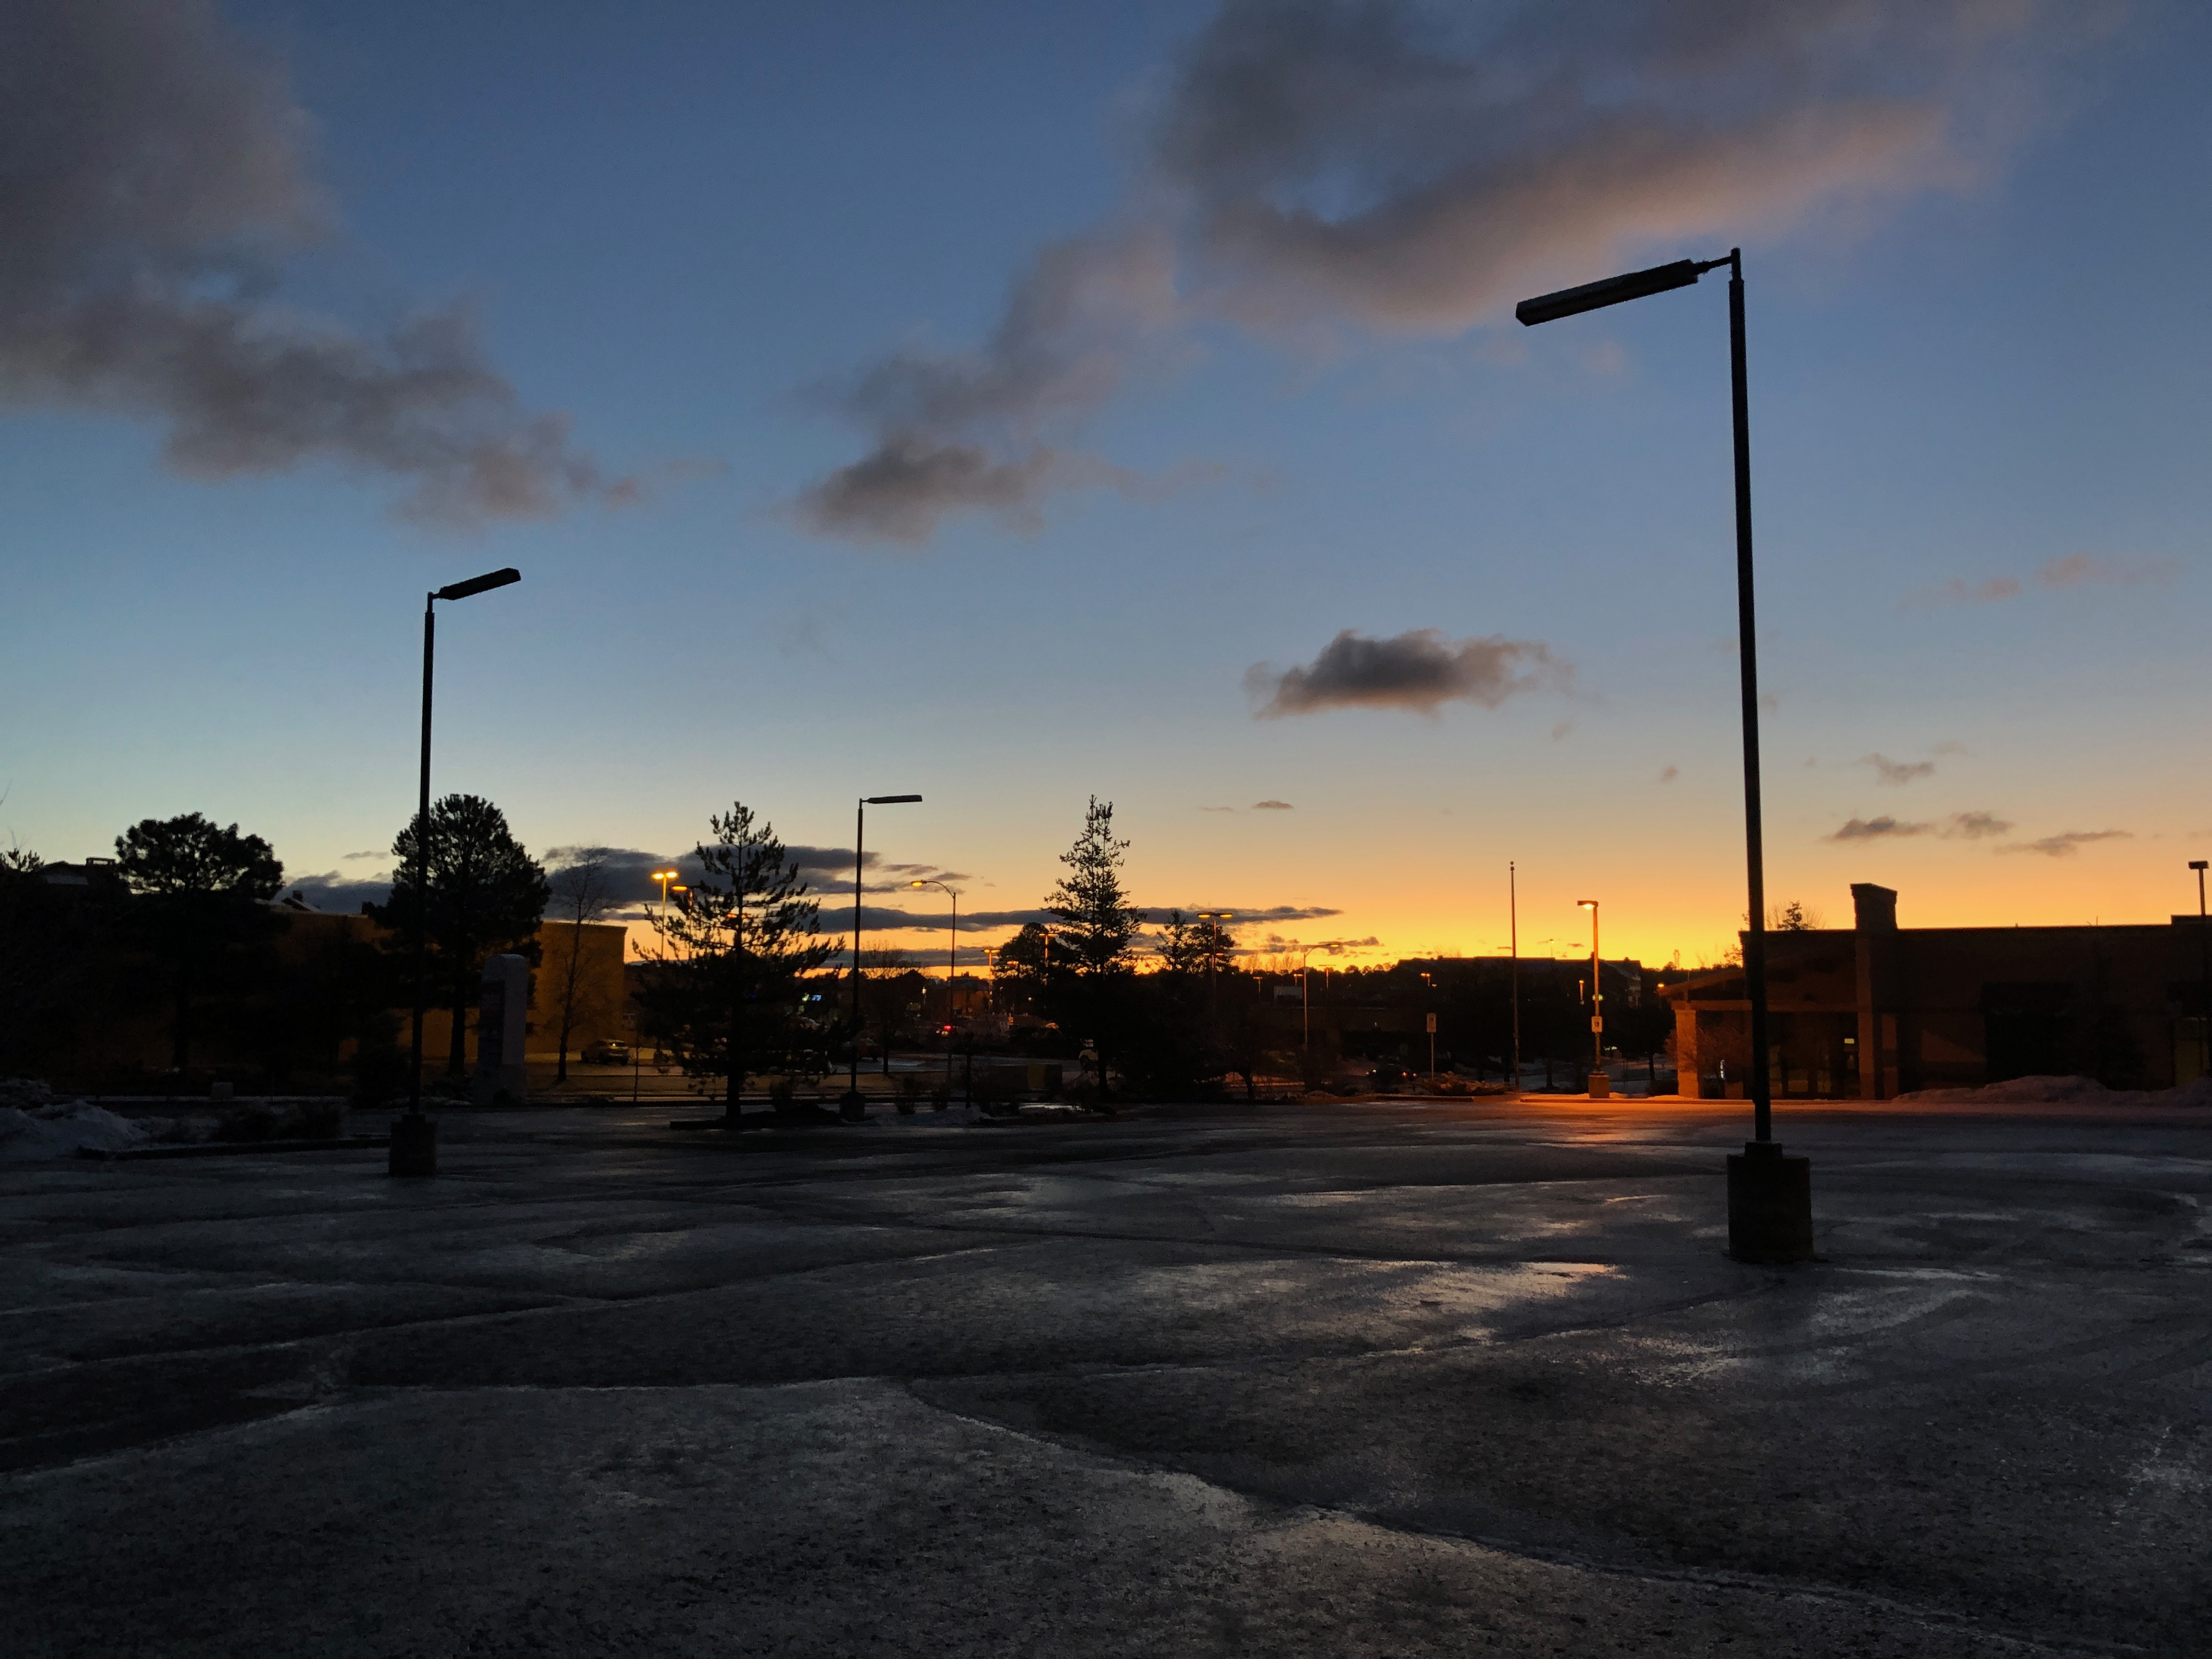 Photo of sunrise over an empty parking lot